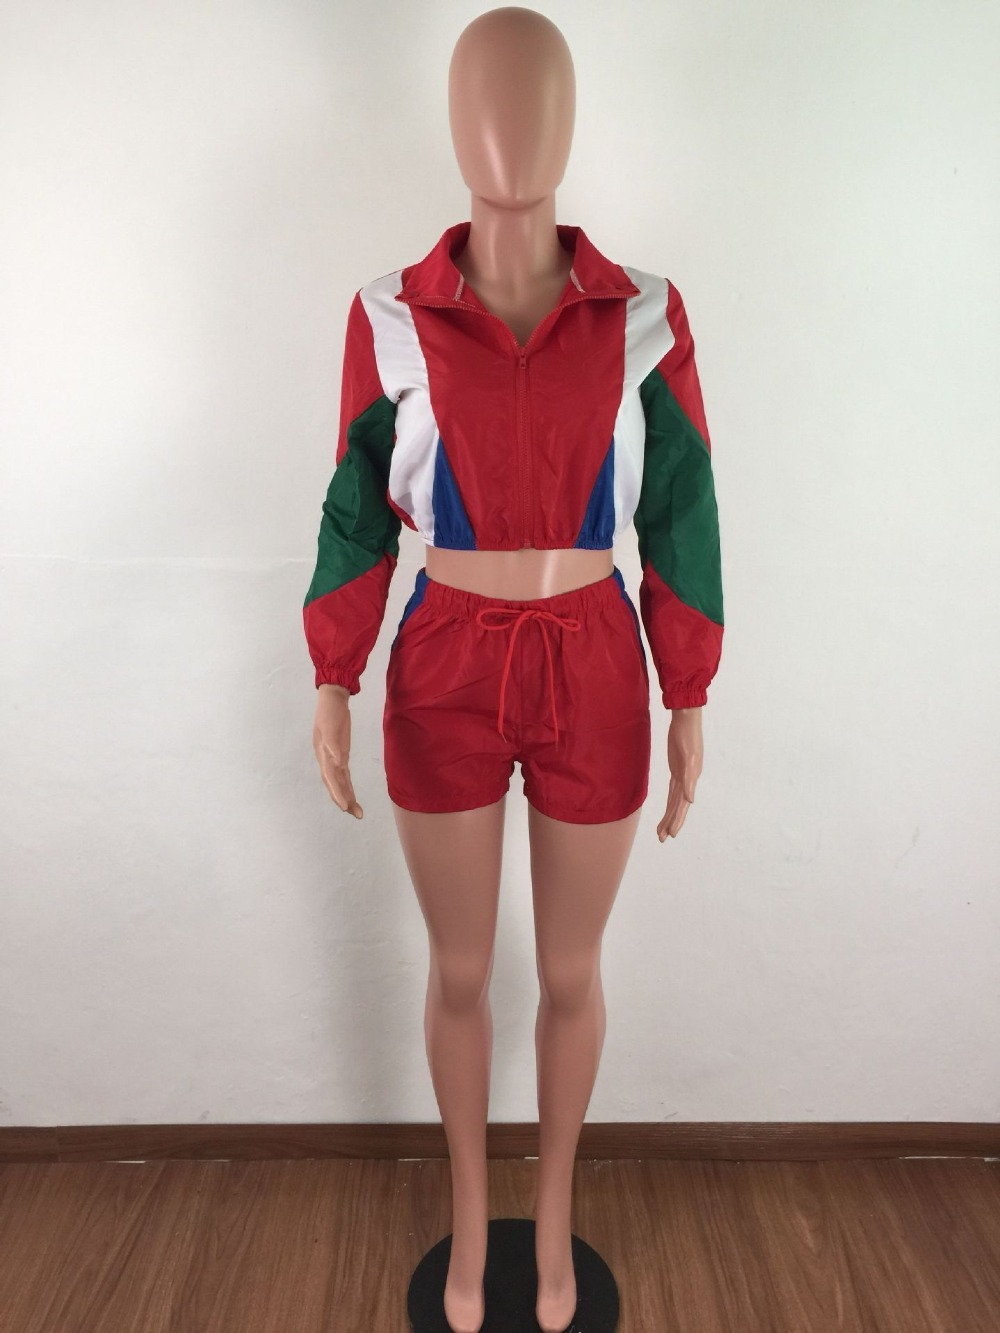 Casual Two Piece Set Women Tracksuit Crop Top and Shorts Short Jacket Colorful Patchwork Sweatshirt Set Sporting Short Set in Women 39 s Sets from Women 39 s Clothing